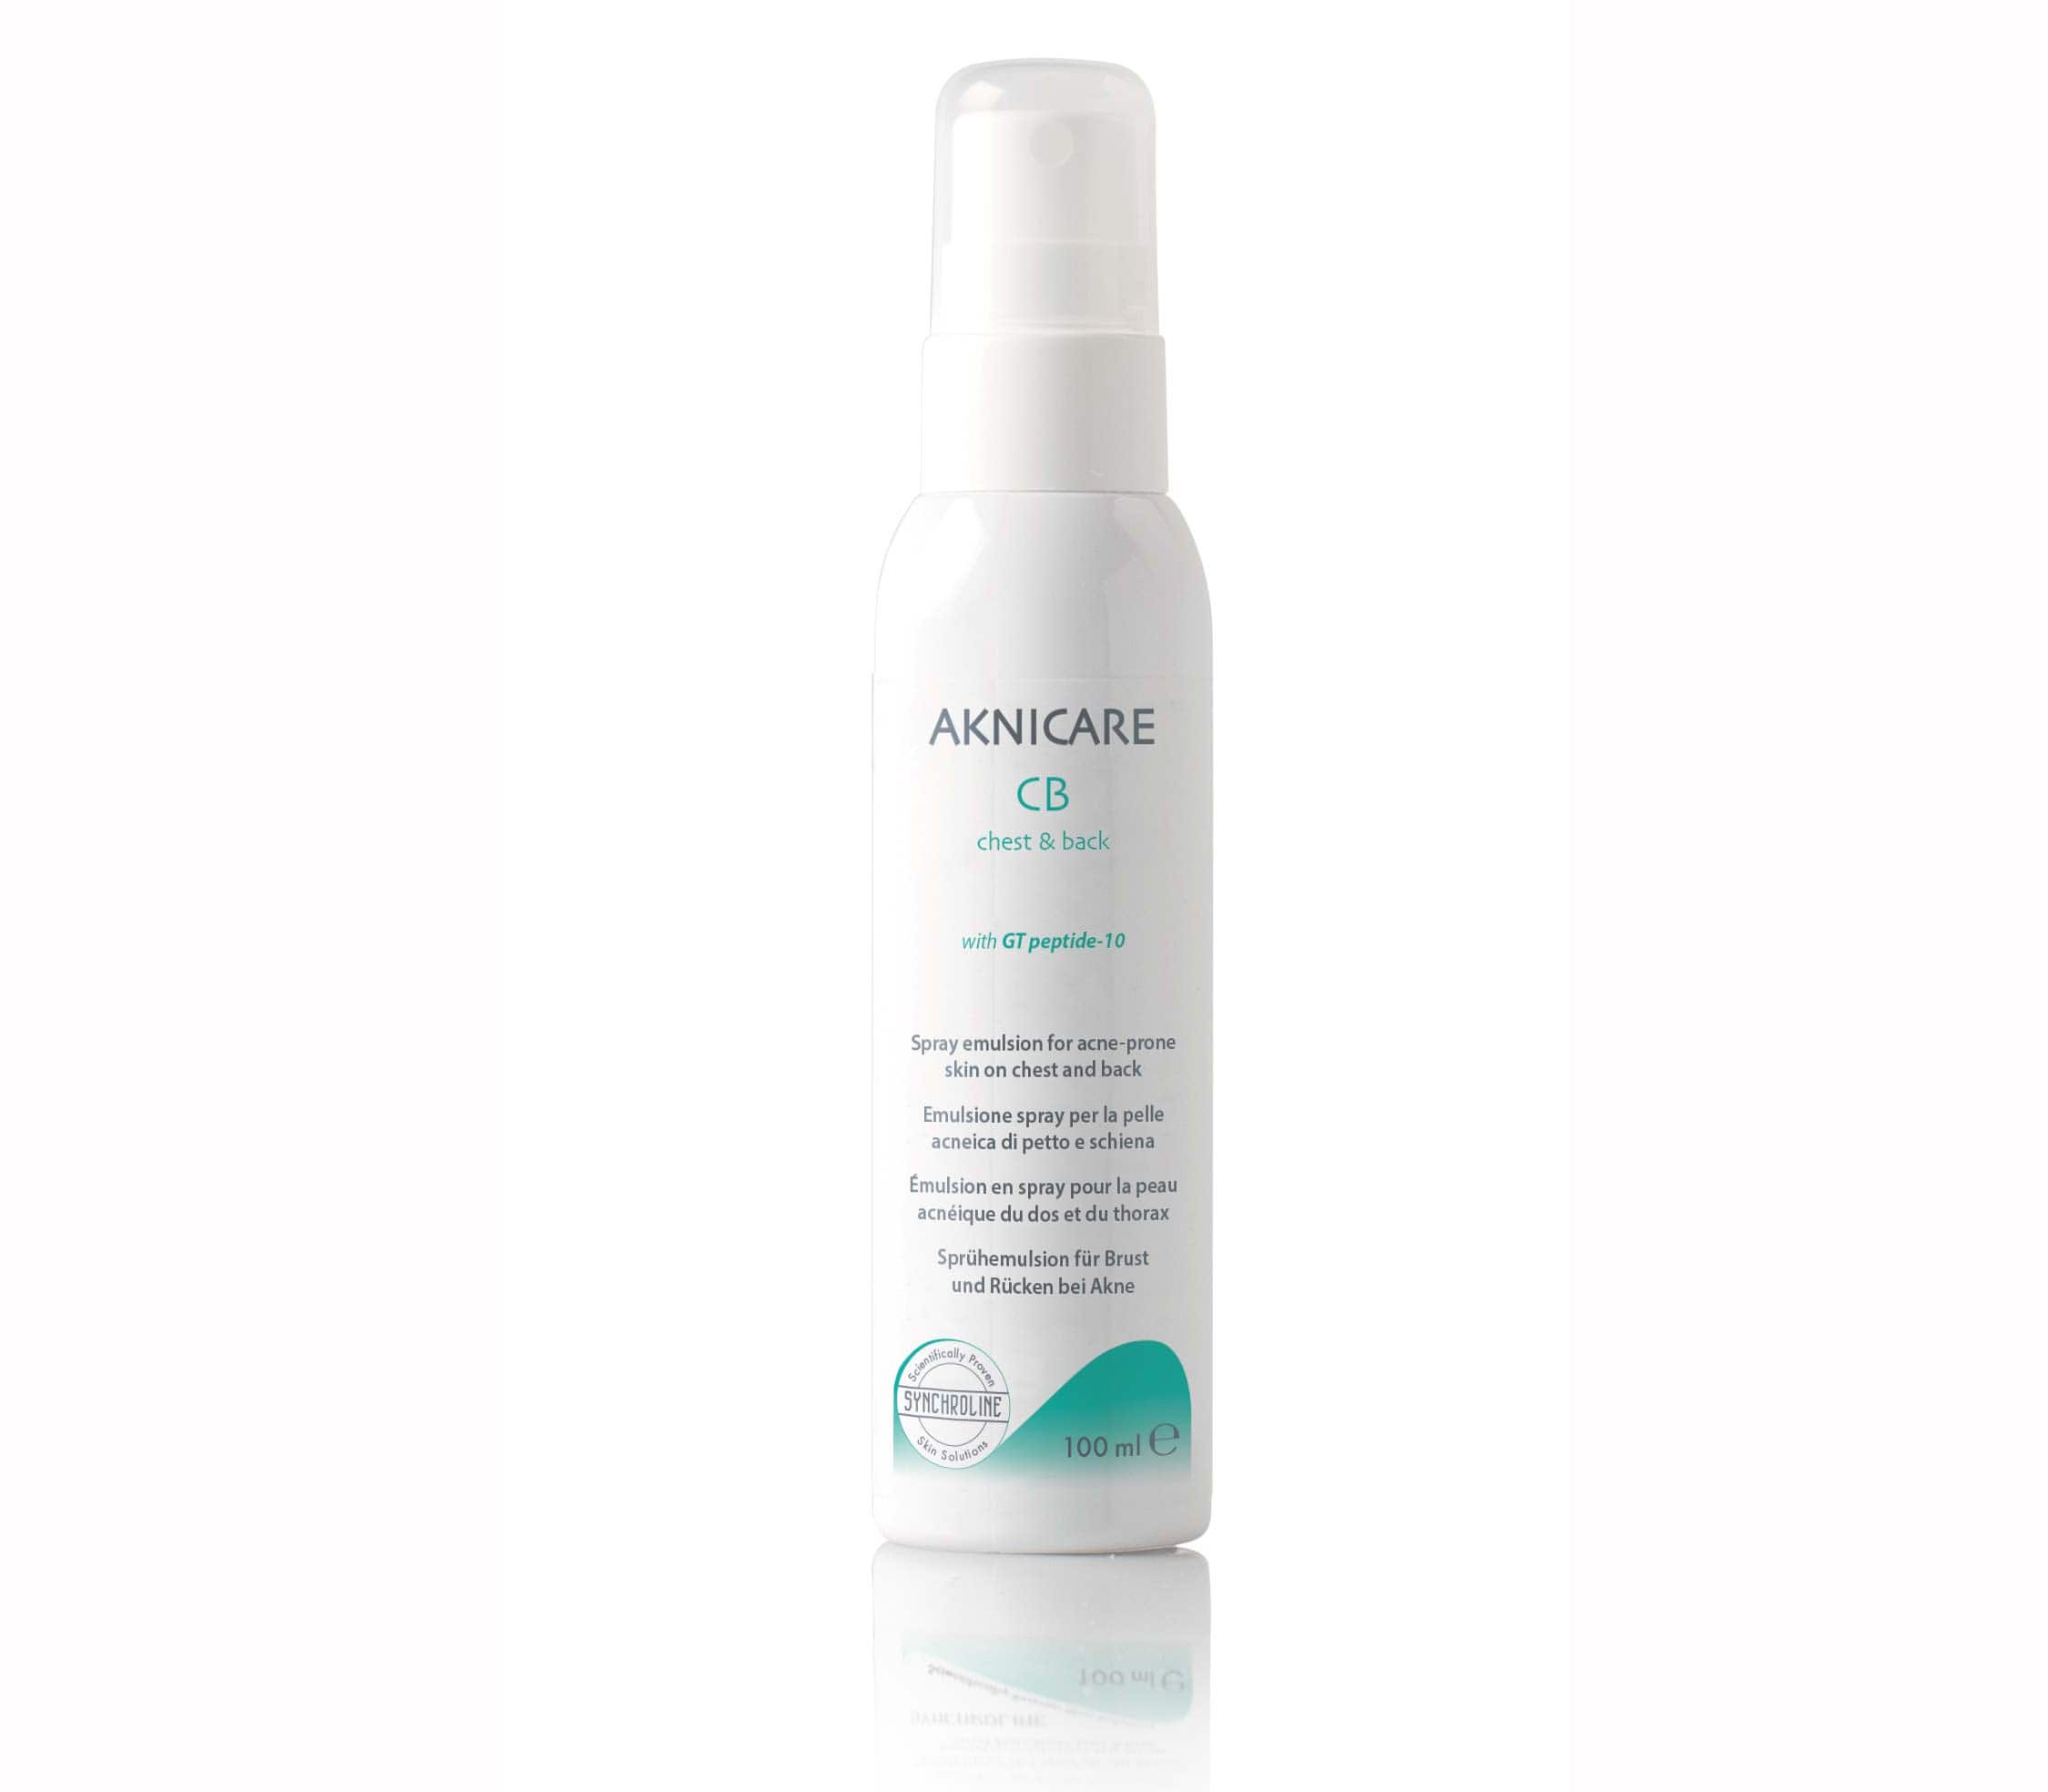 Synchroline Aknicare CB Chest & Back, 100ml